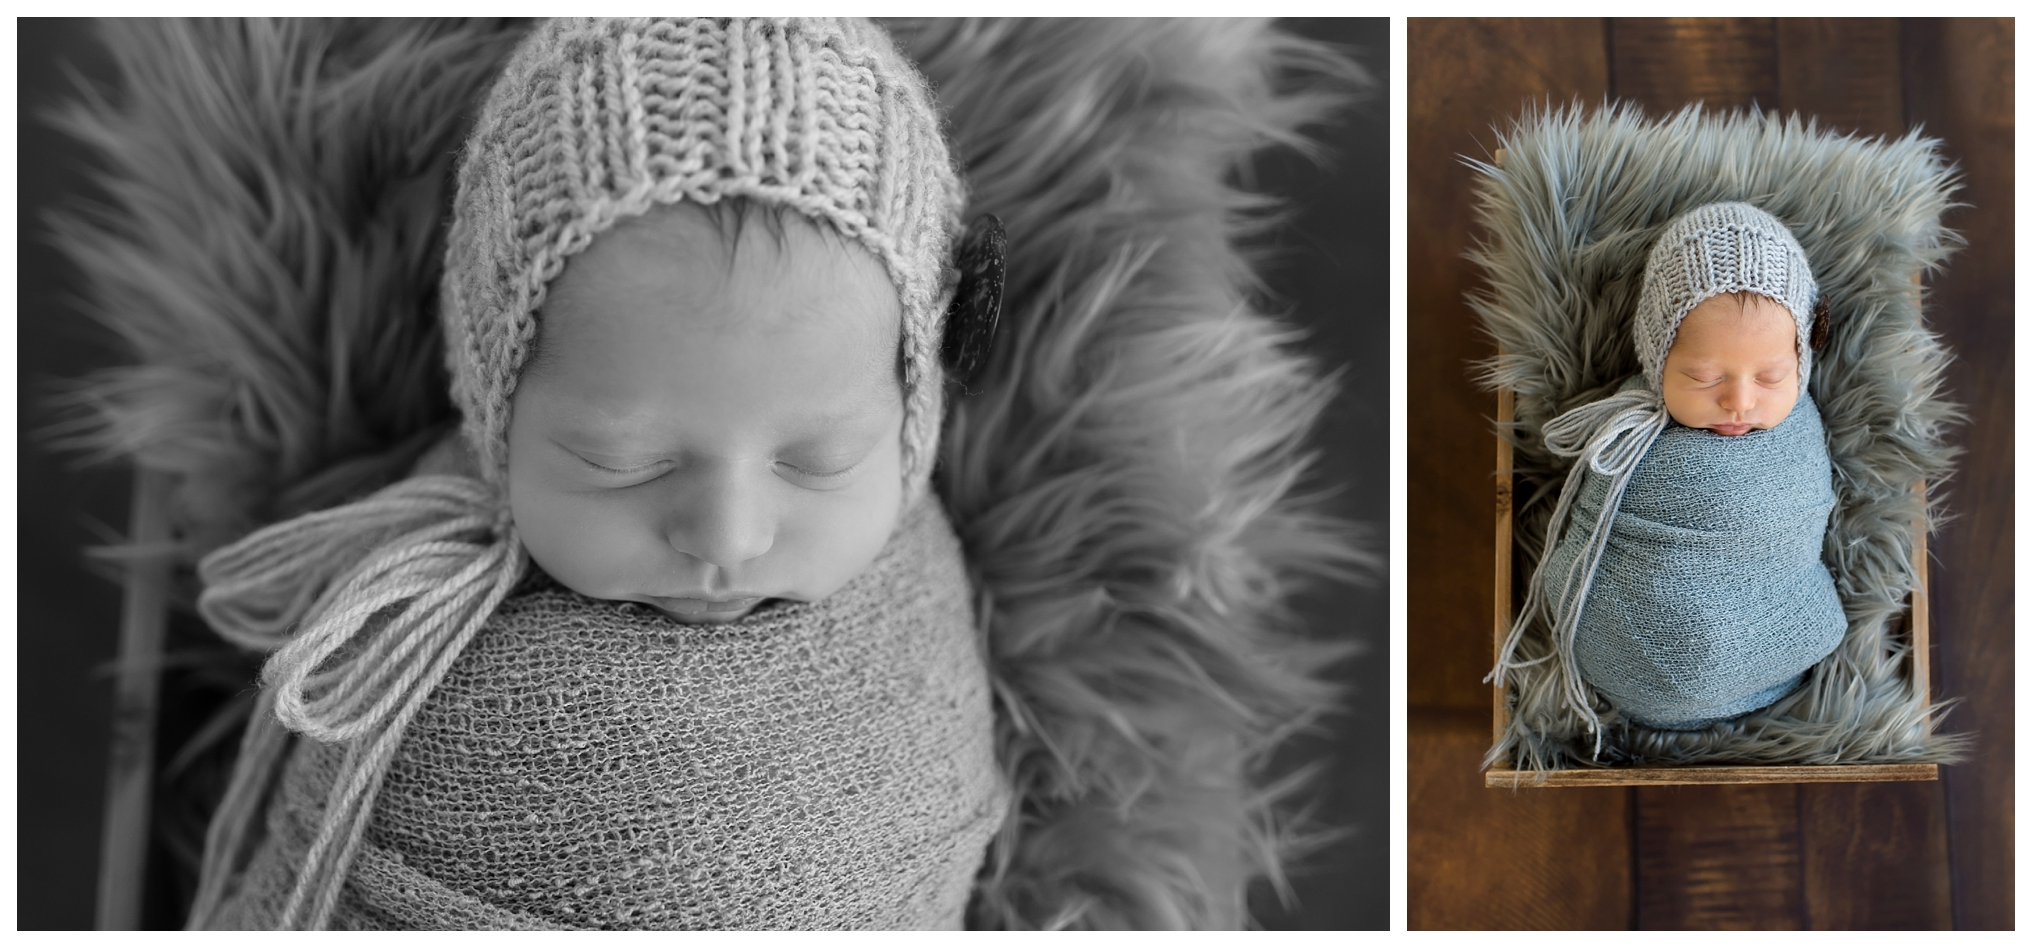 Kittery Maine Baby Photographer Sweet Light Portraits specializes in natural light newborn photography serving the Seacoast area of Southern Maine & New Hampshire.